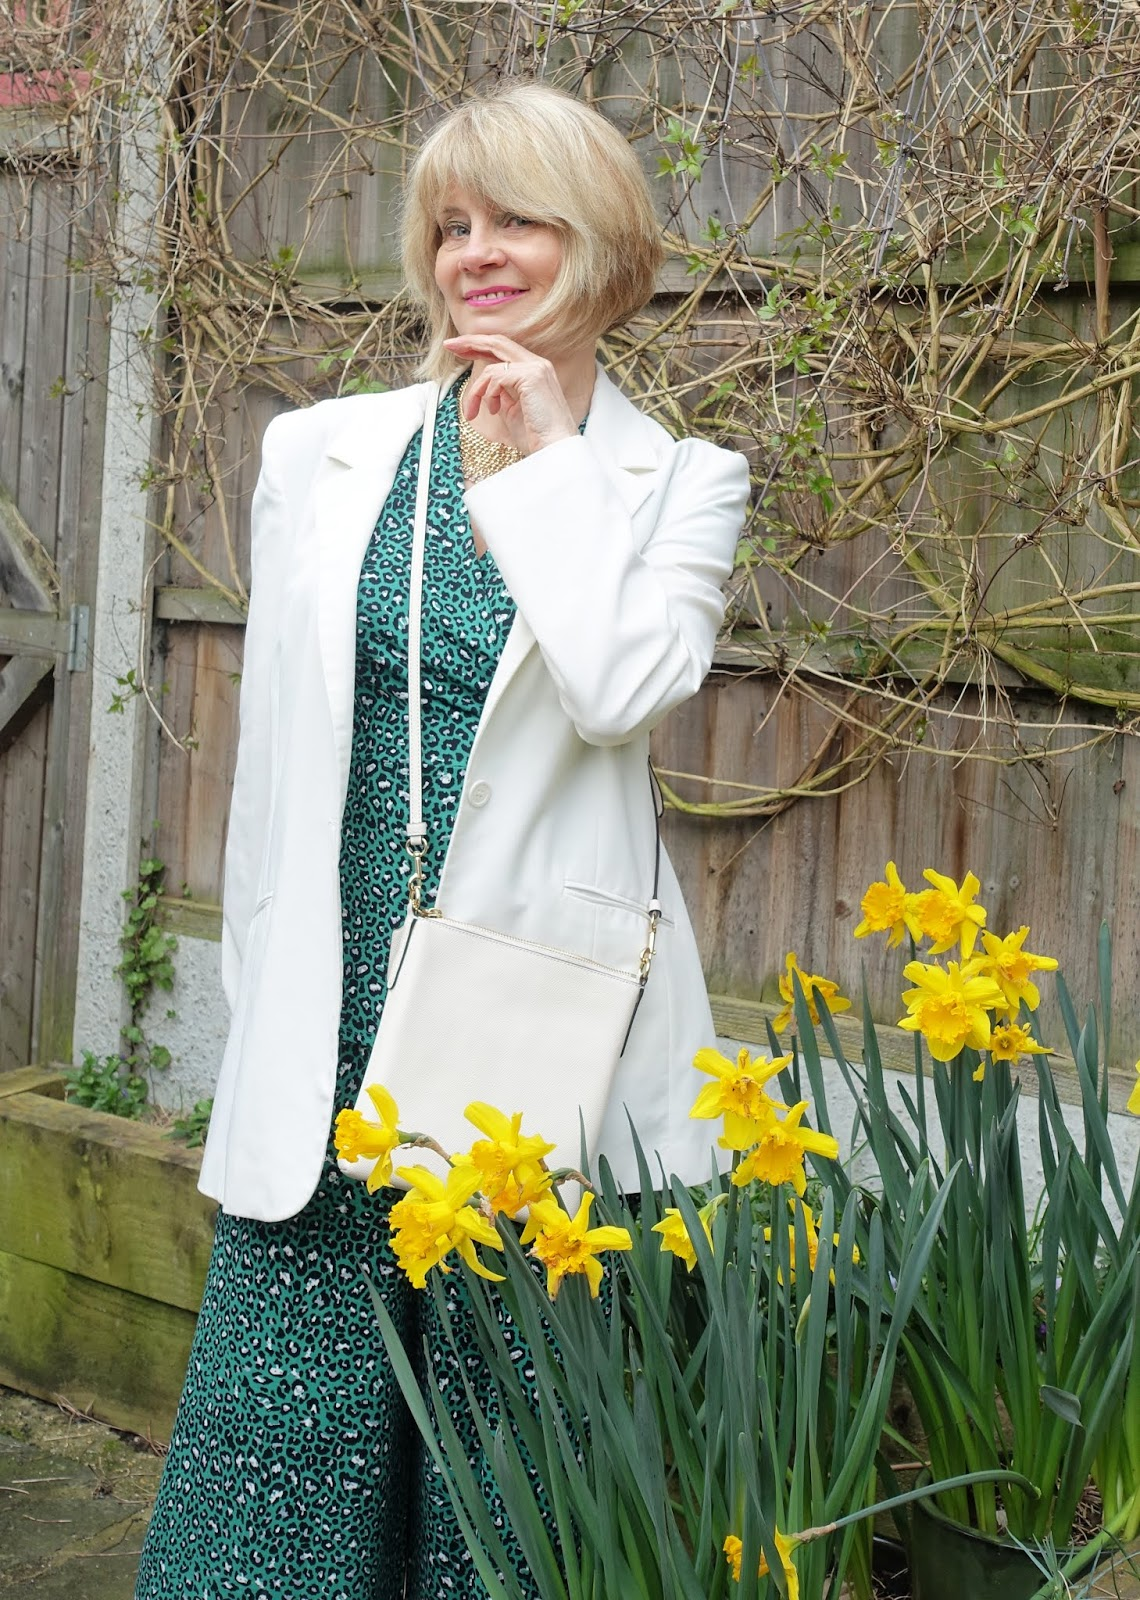 Over 50s style blog Is This Mutton? on the figure flattering benefits of co-ordinates